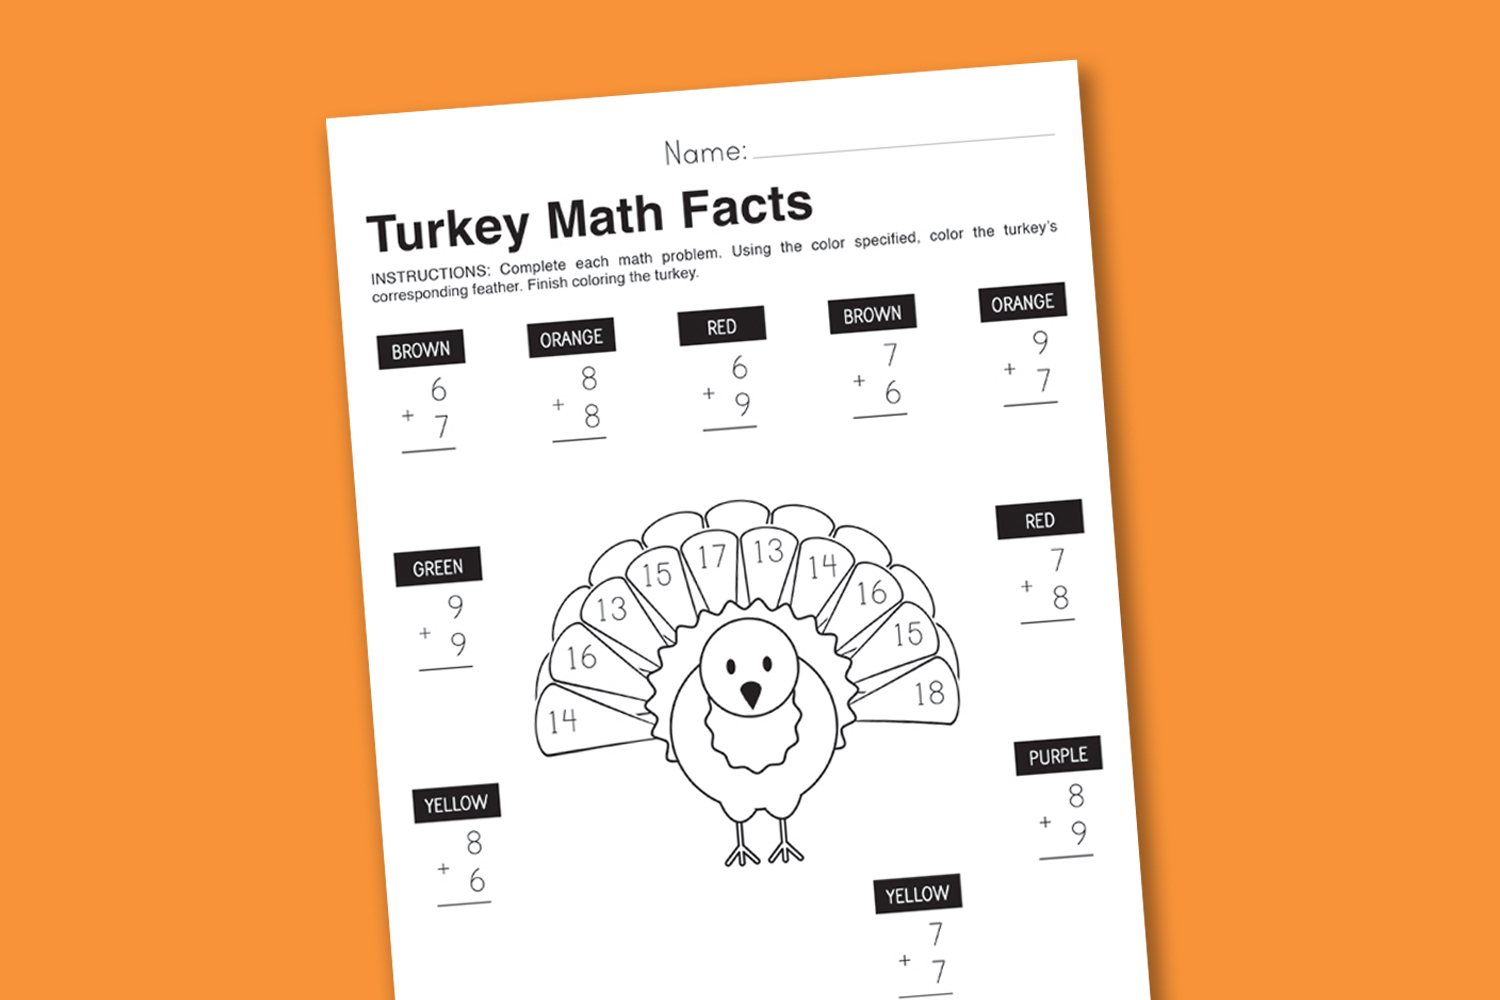 Worksheet Wednesday: Turkey Math Facts - Paging Supermom | Math Worksheets Thanksgiving Free Printable